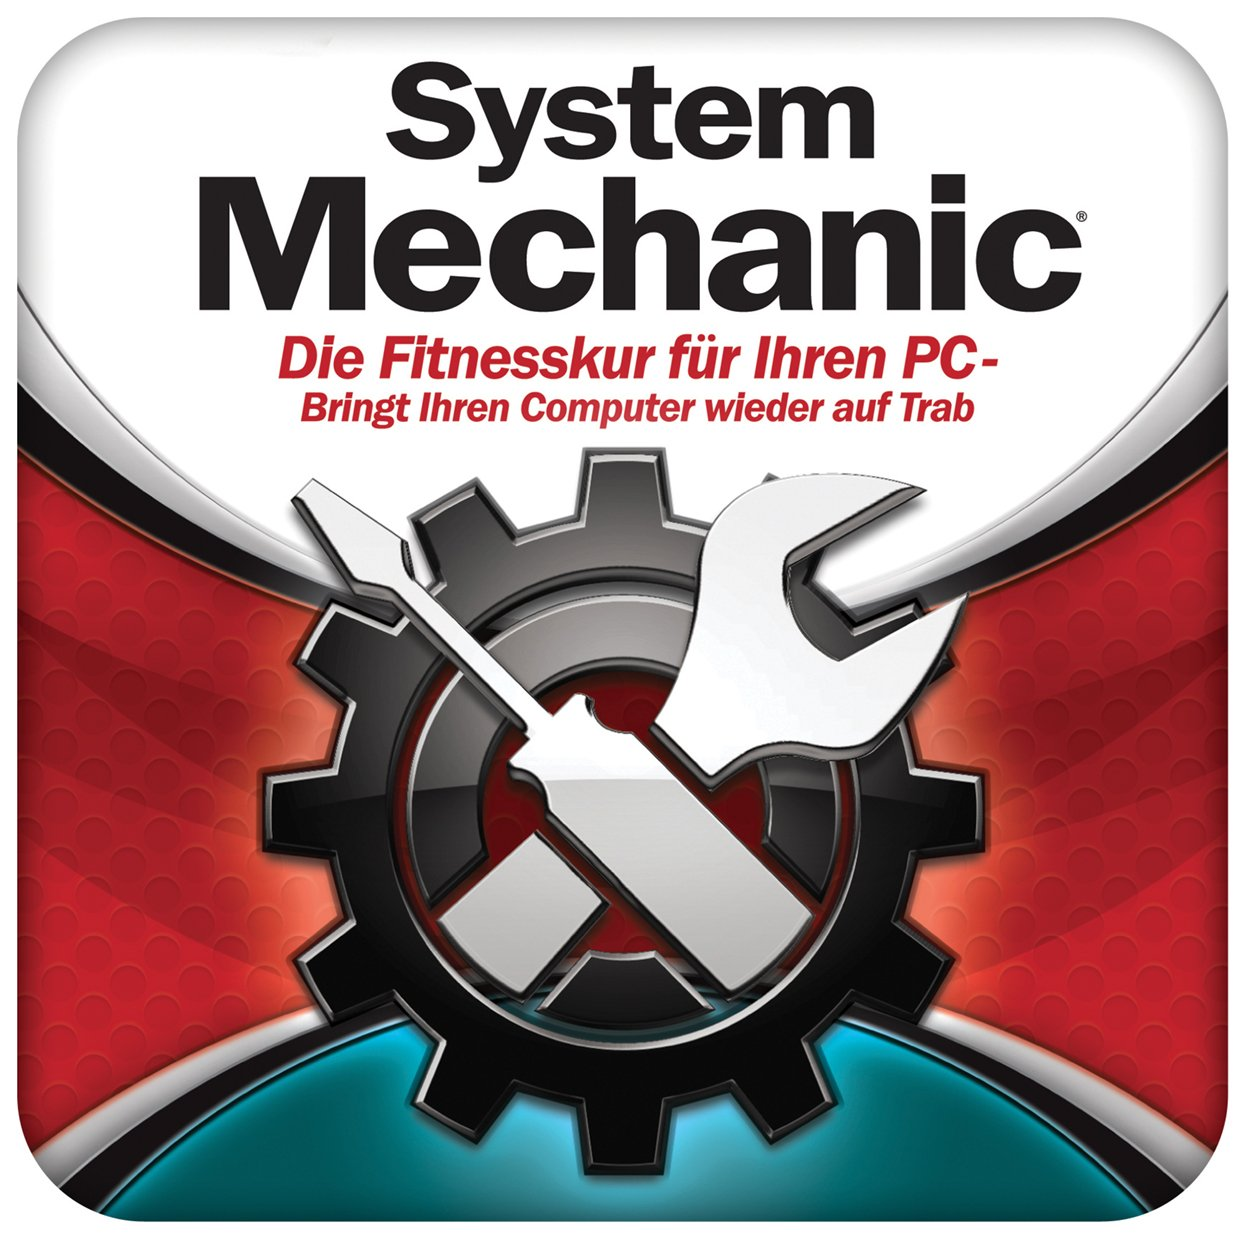 System Mechanic Pro 21.7.0.34 Crack with Activation Key Download 2021